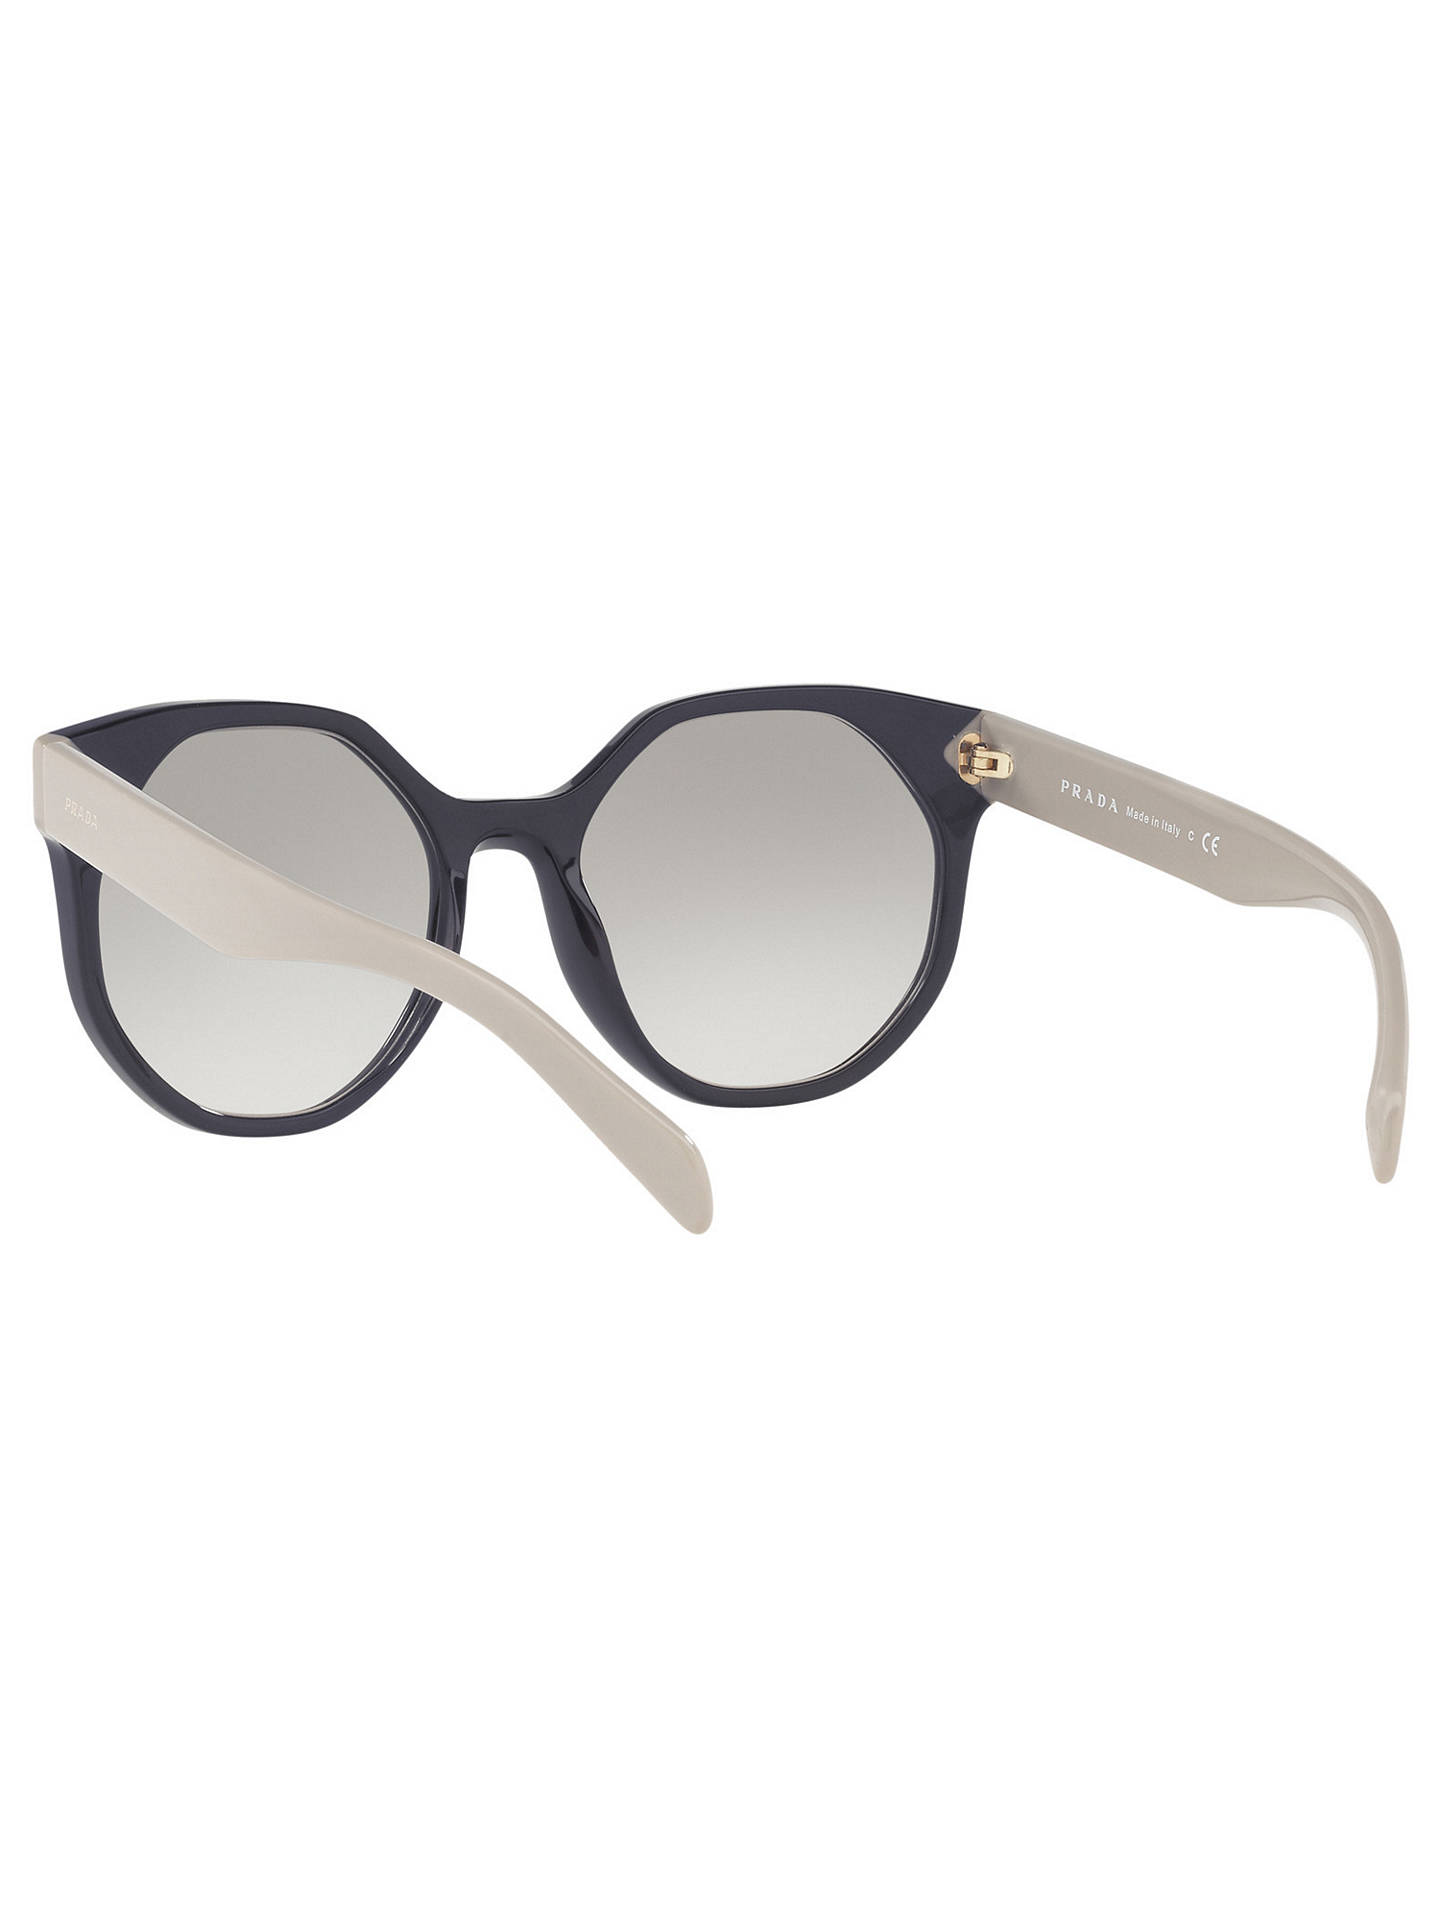 BuyPrada PR 11TS Outsize Oval Sunglasses, Navy Taupe/Grey Gradient Online at johnlewis.com